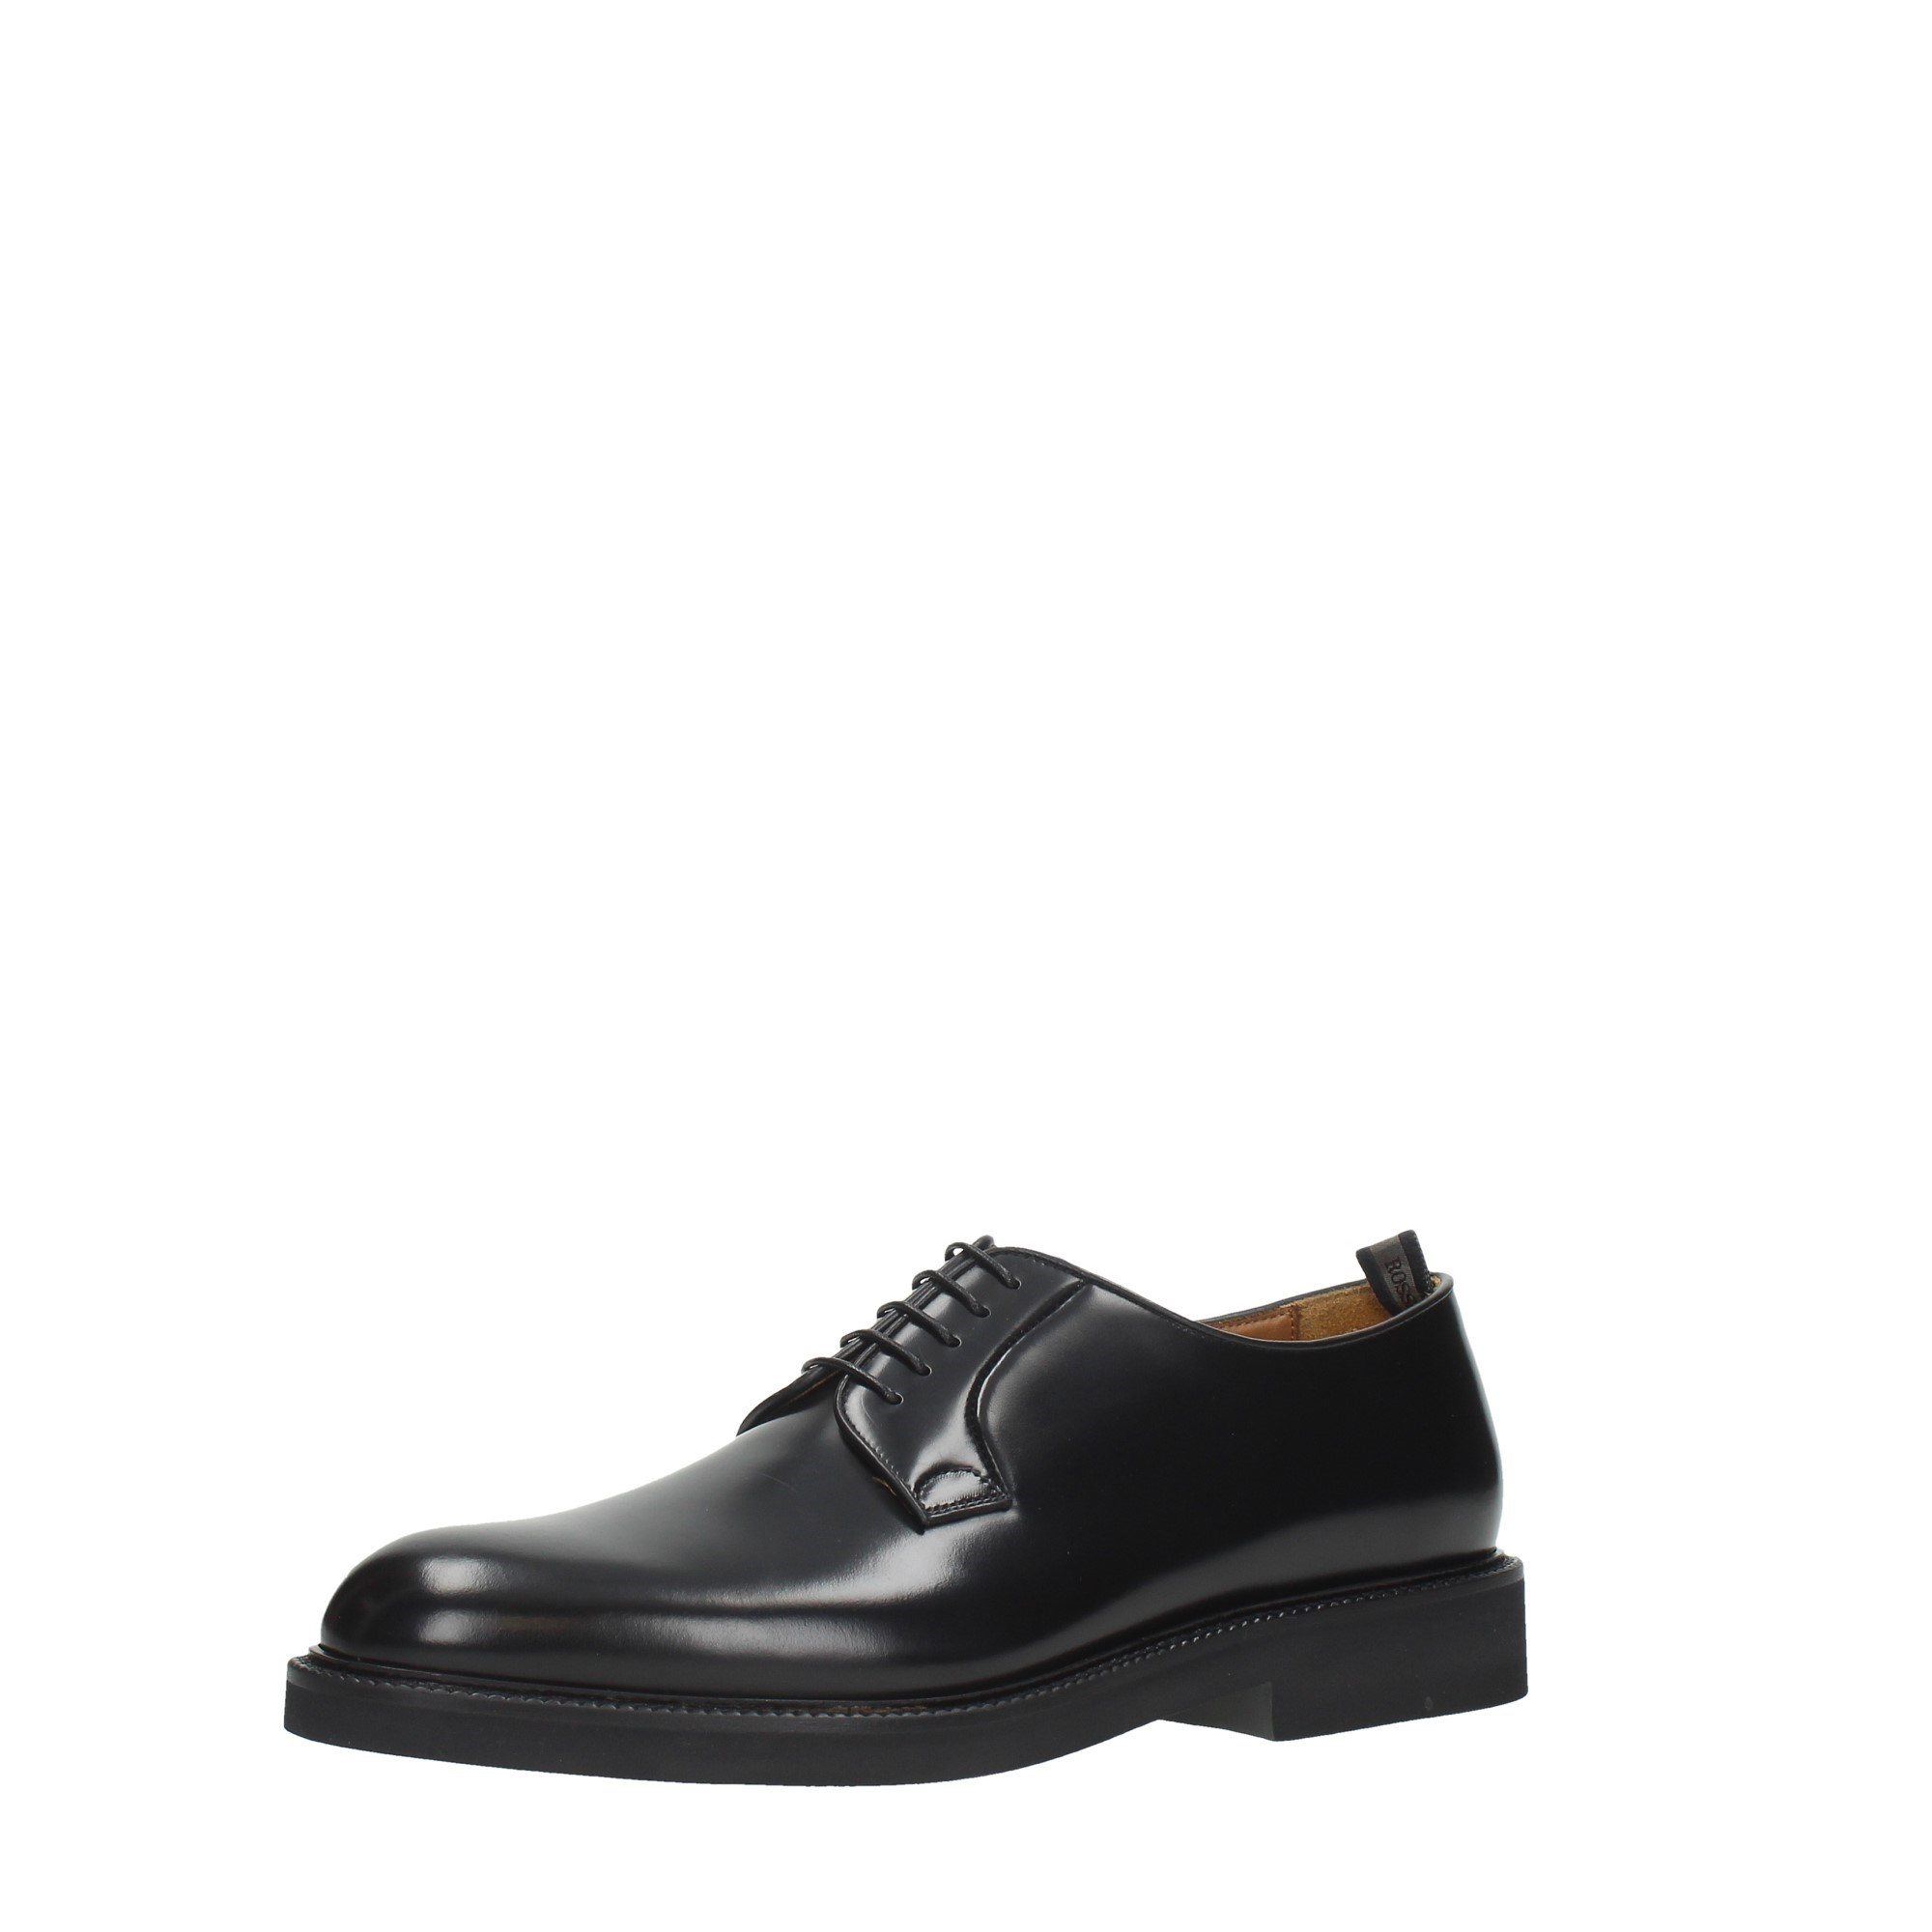 Rossi Shoes Man Laced Black 6403